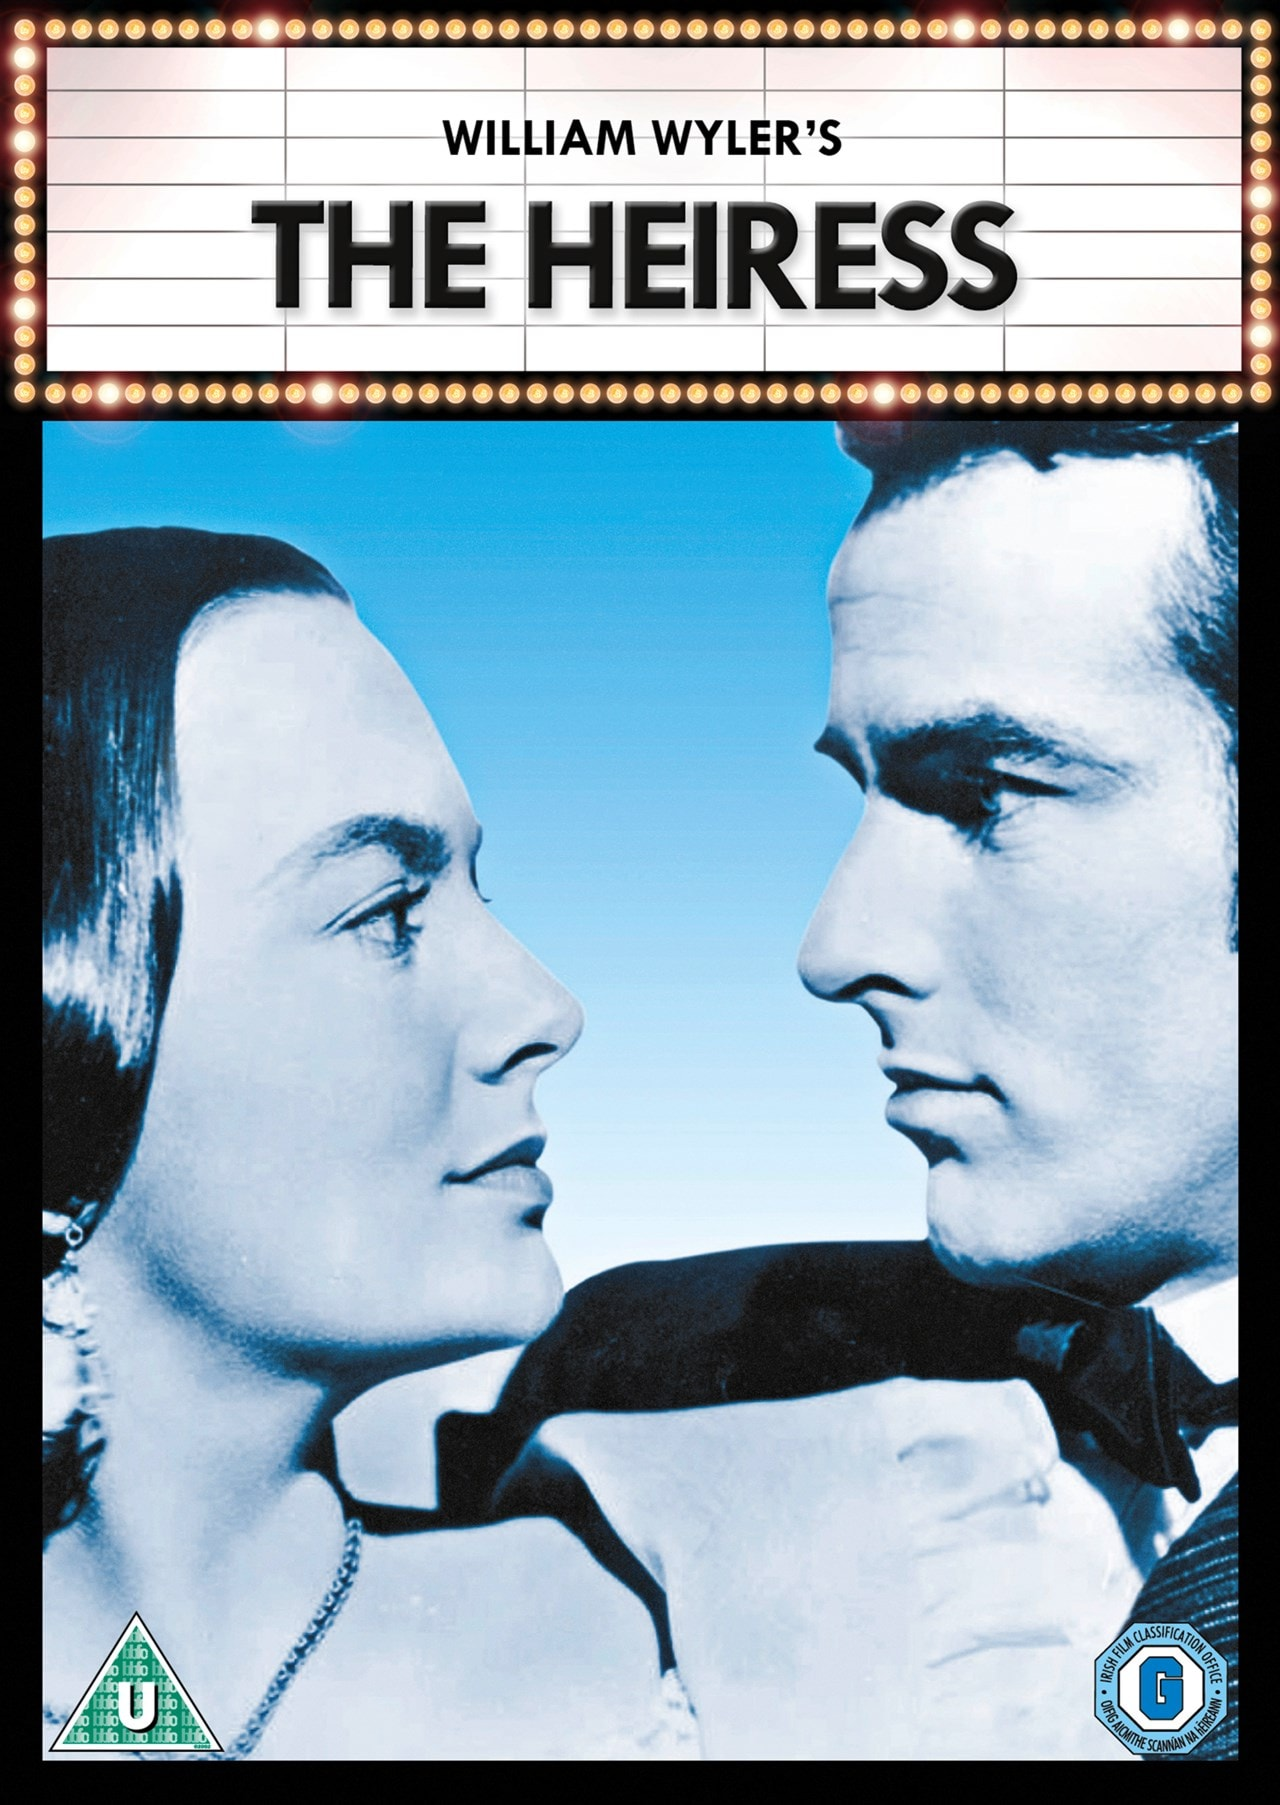 The Heiress - 1